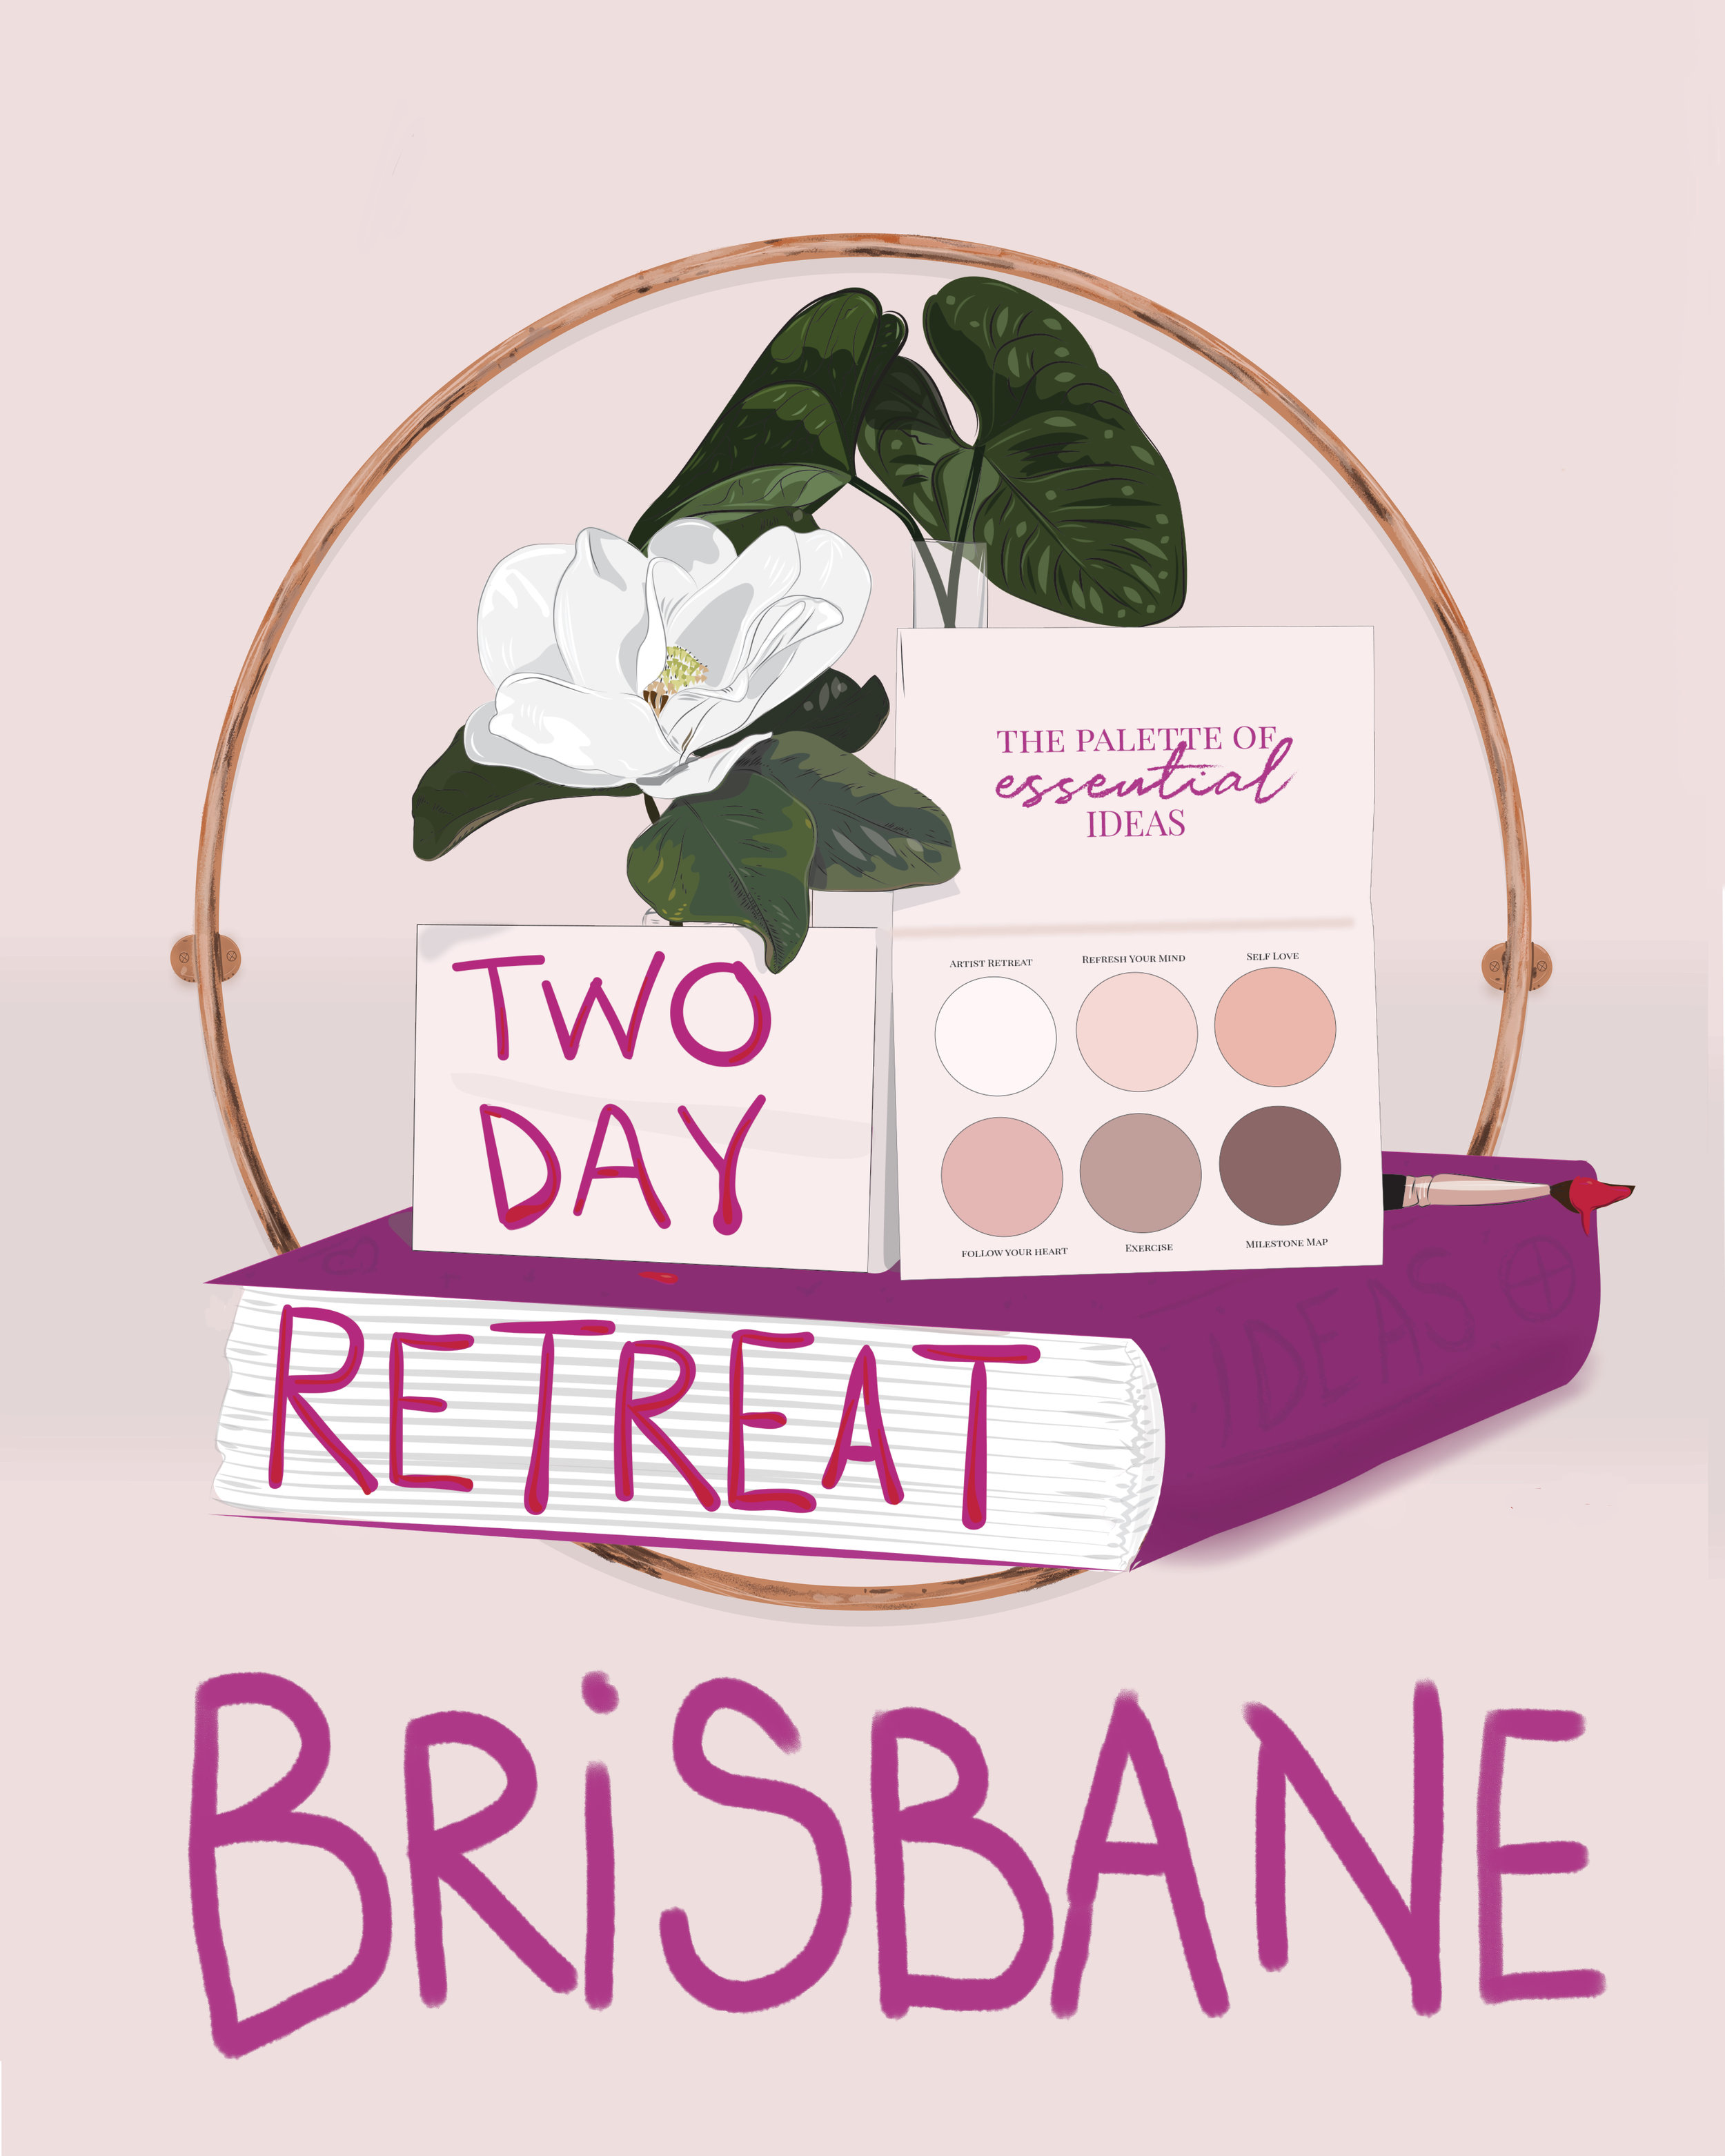 Brisbane Two Day Retreat.jpg